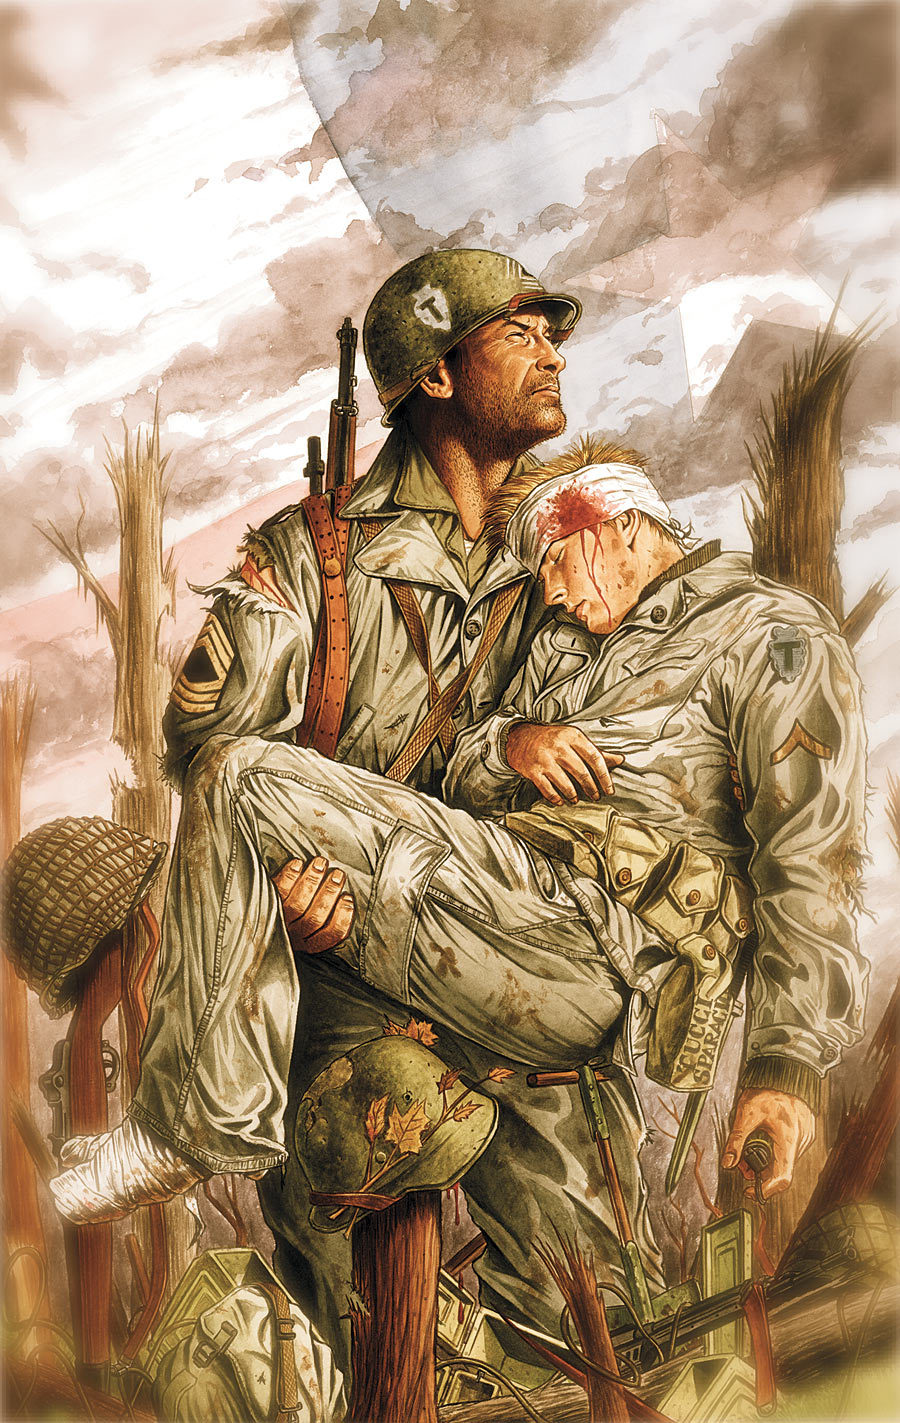 Sgt. Rock: The Lost Battalion Vol 1 5